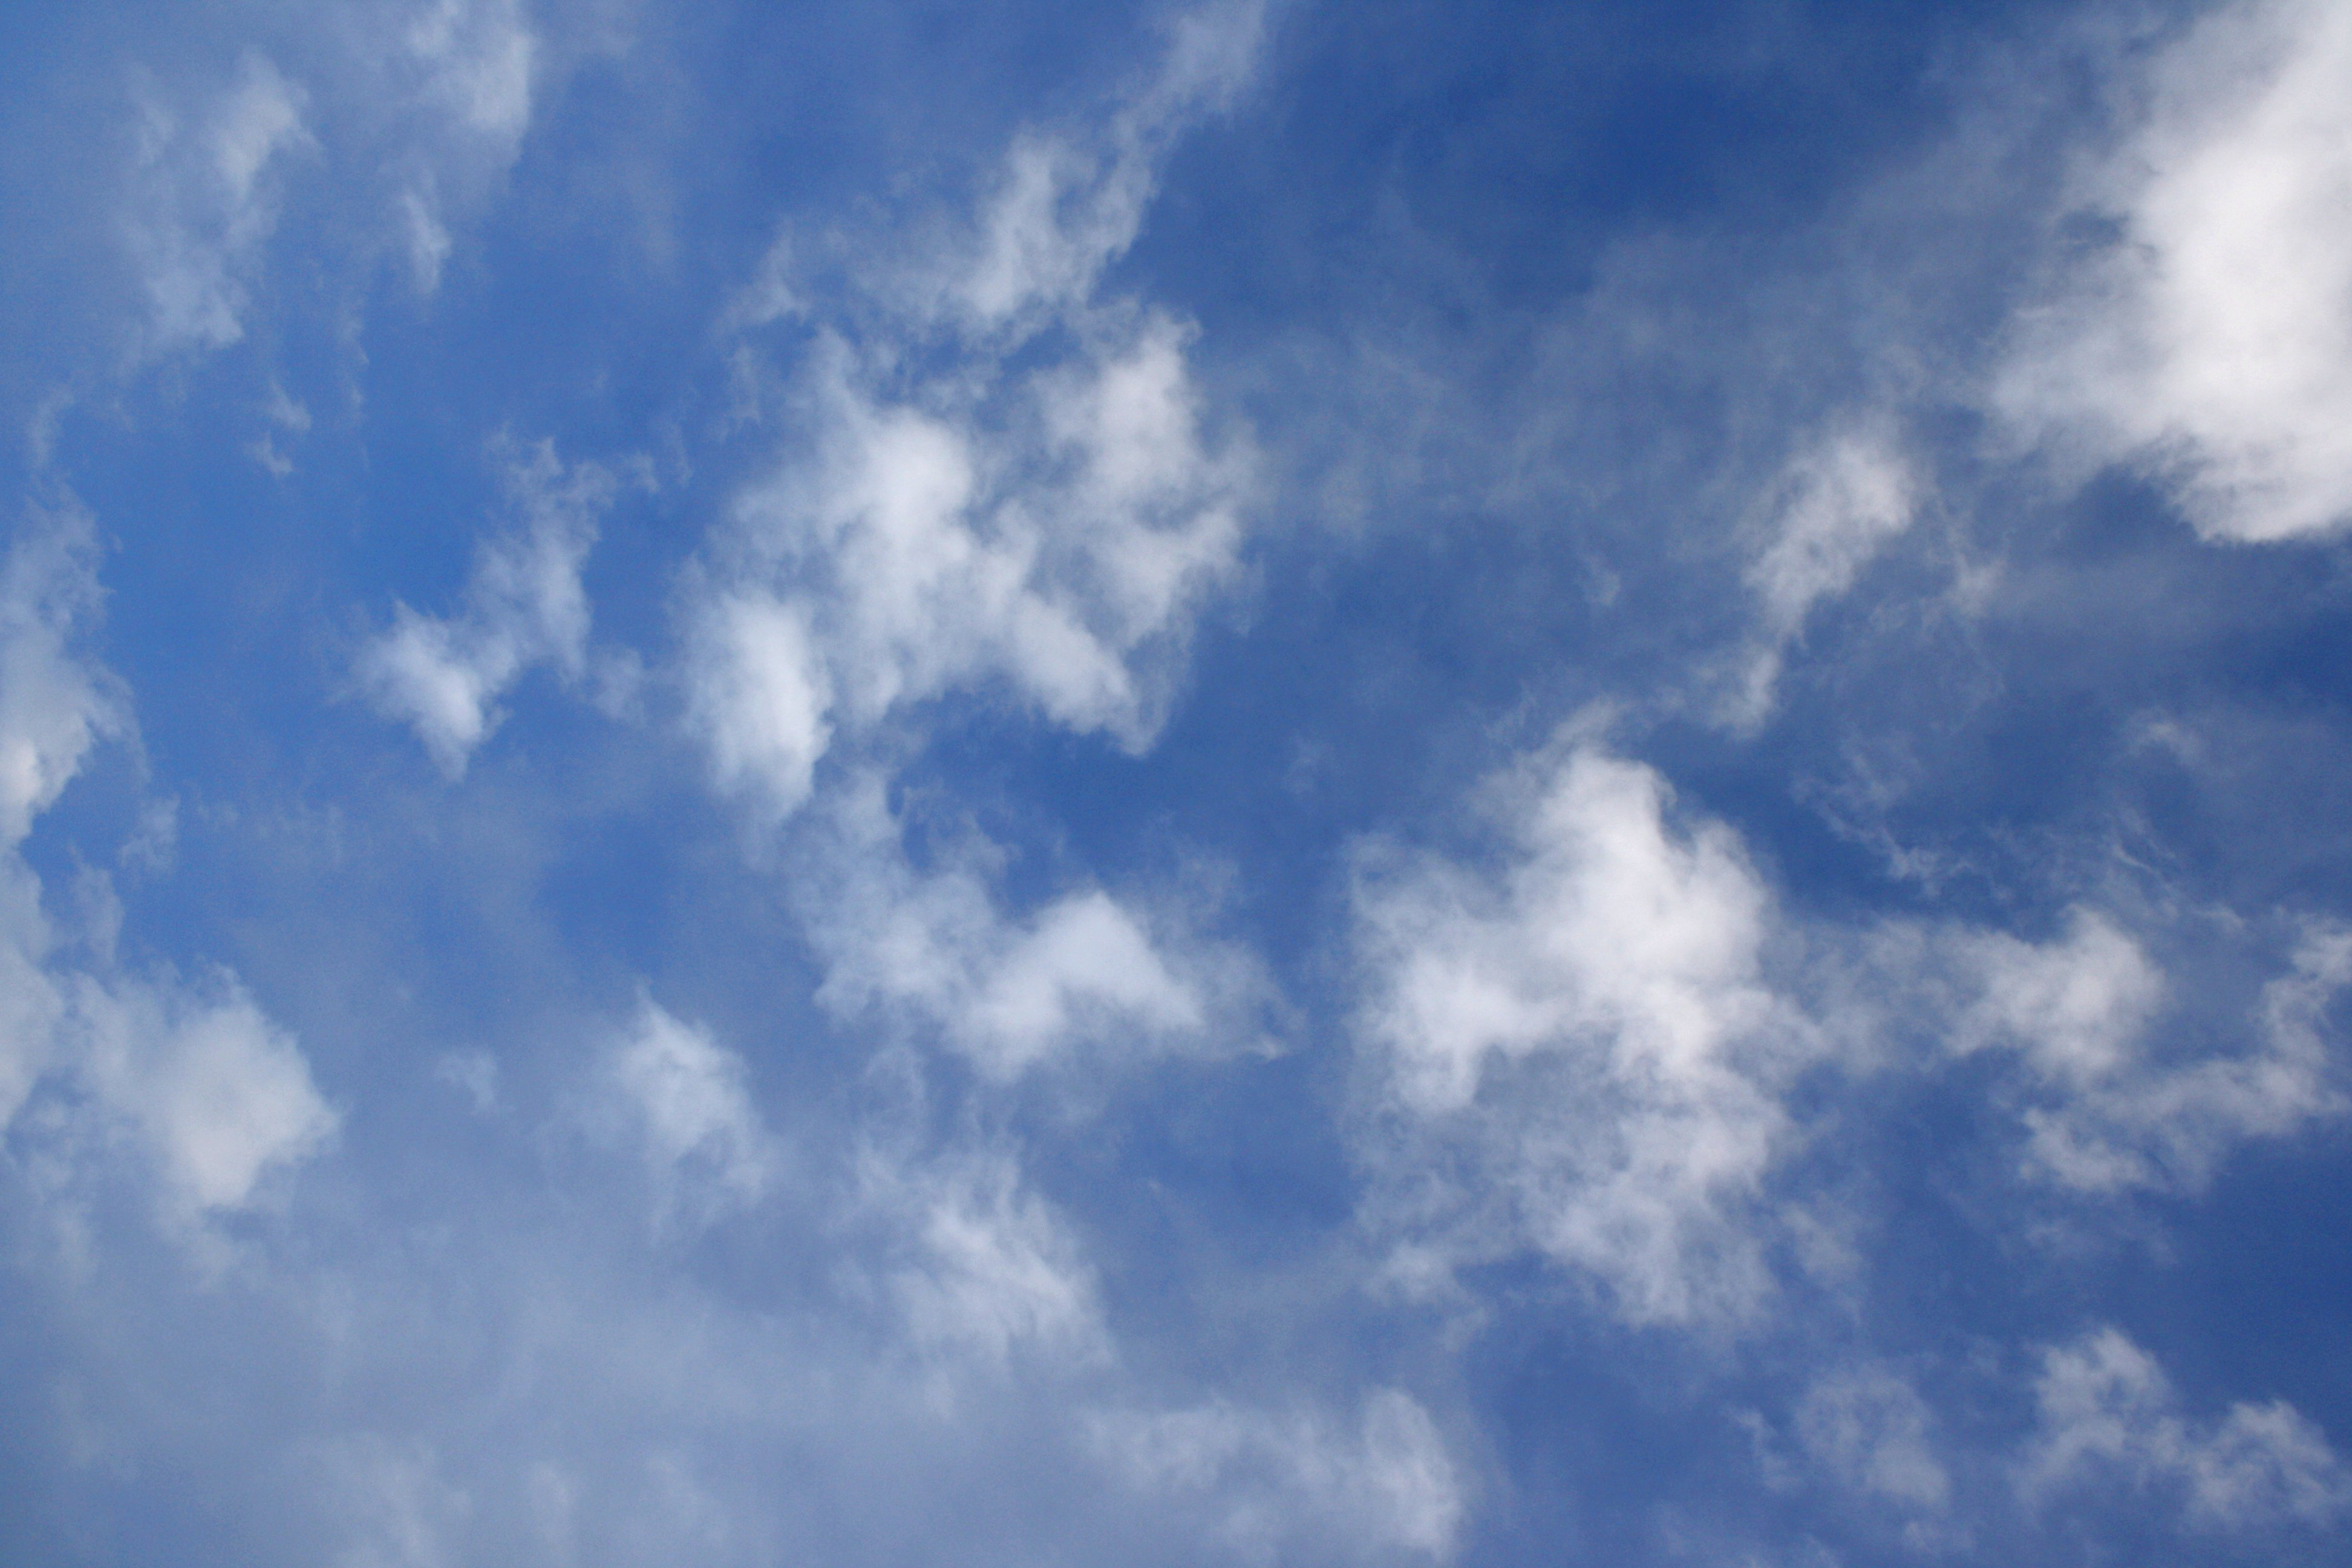 Blue Sky with White Clouds Texture Picture Photograph Photos 3888x2592